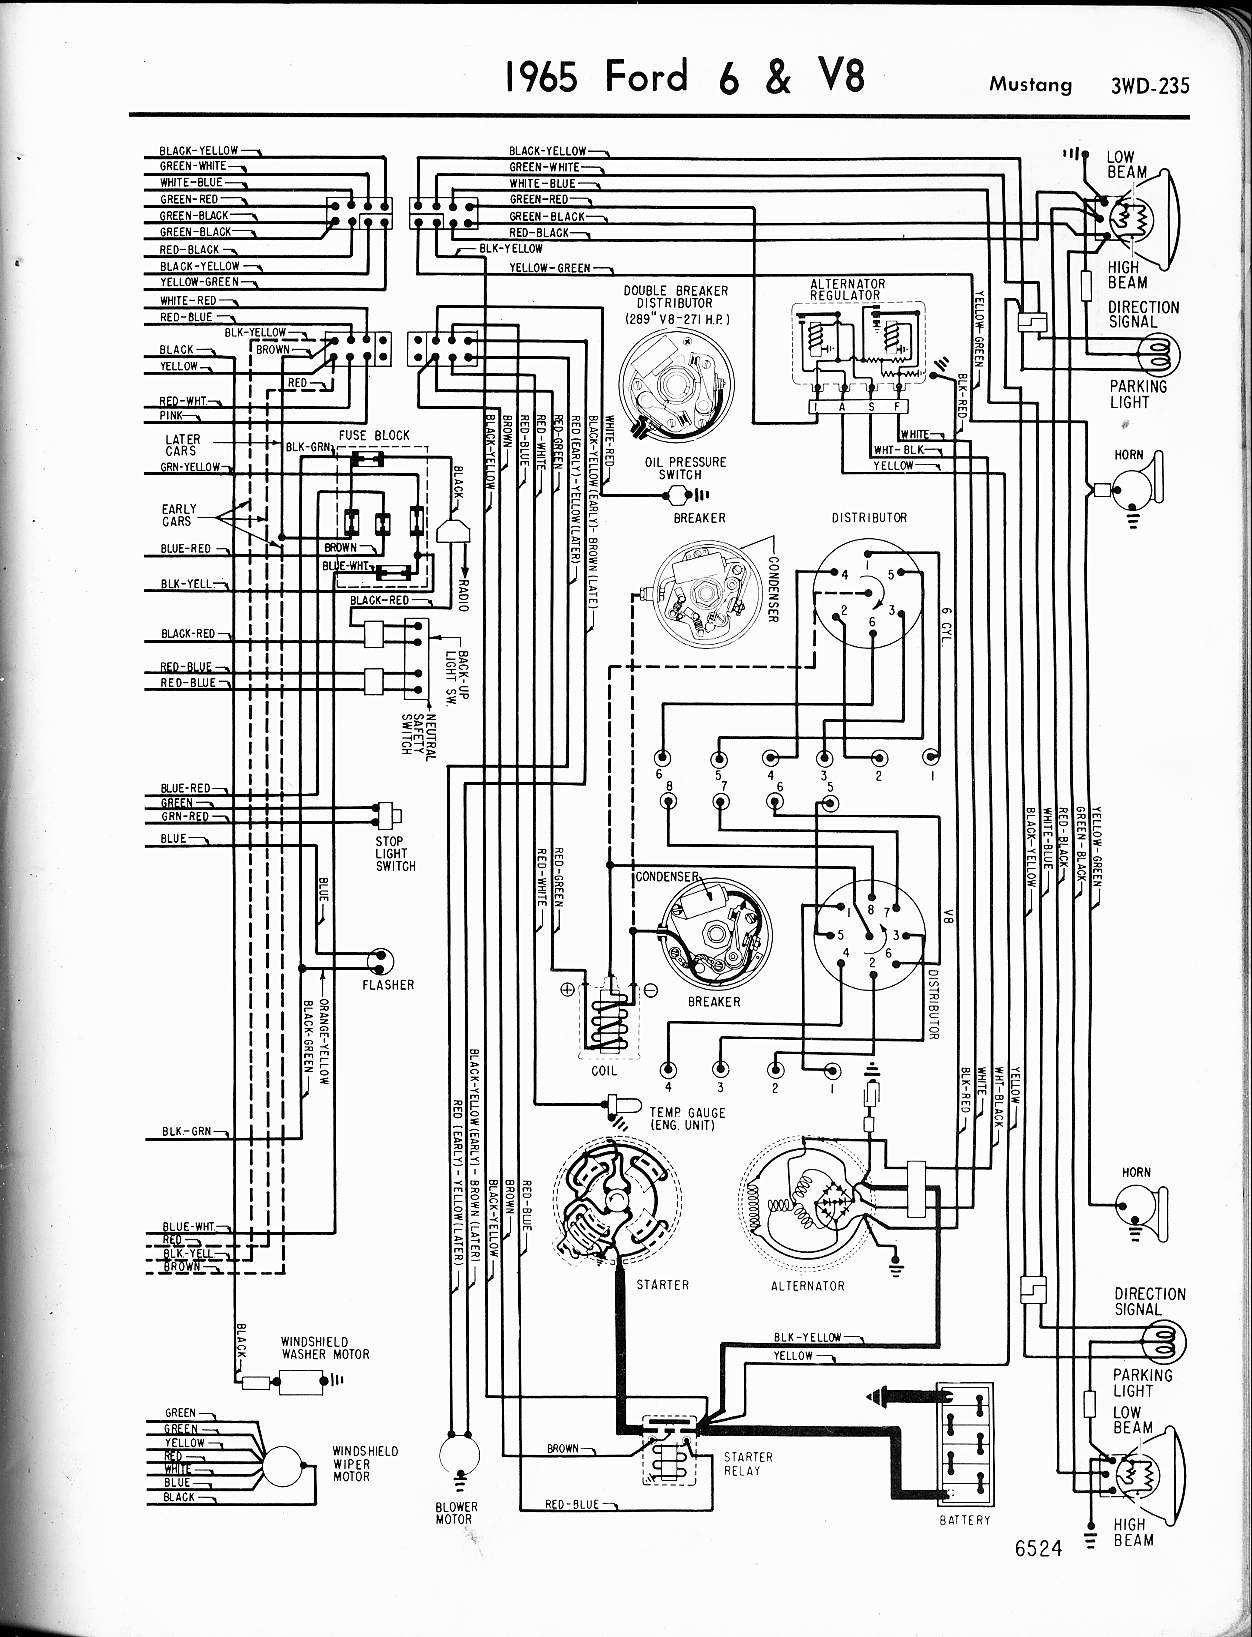 1965_mustang_wiring_2 ford diagrams Terminator Time Loop Diagram at suagrazia.org